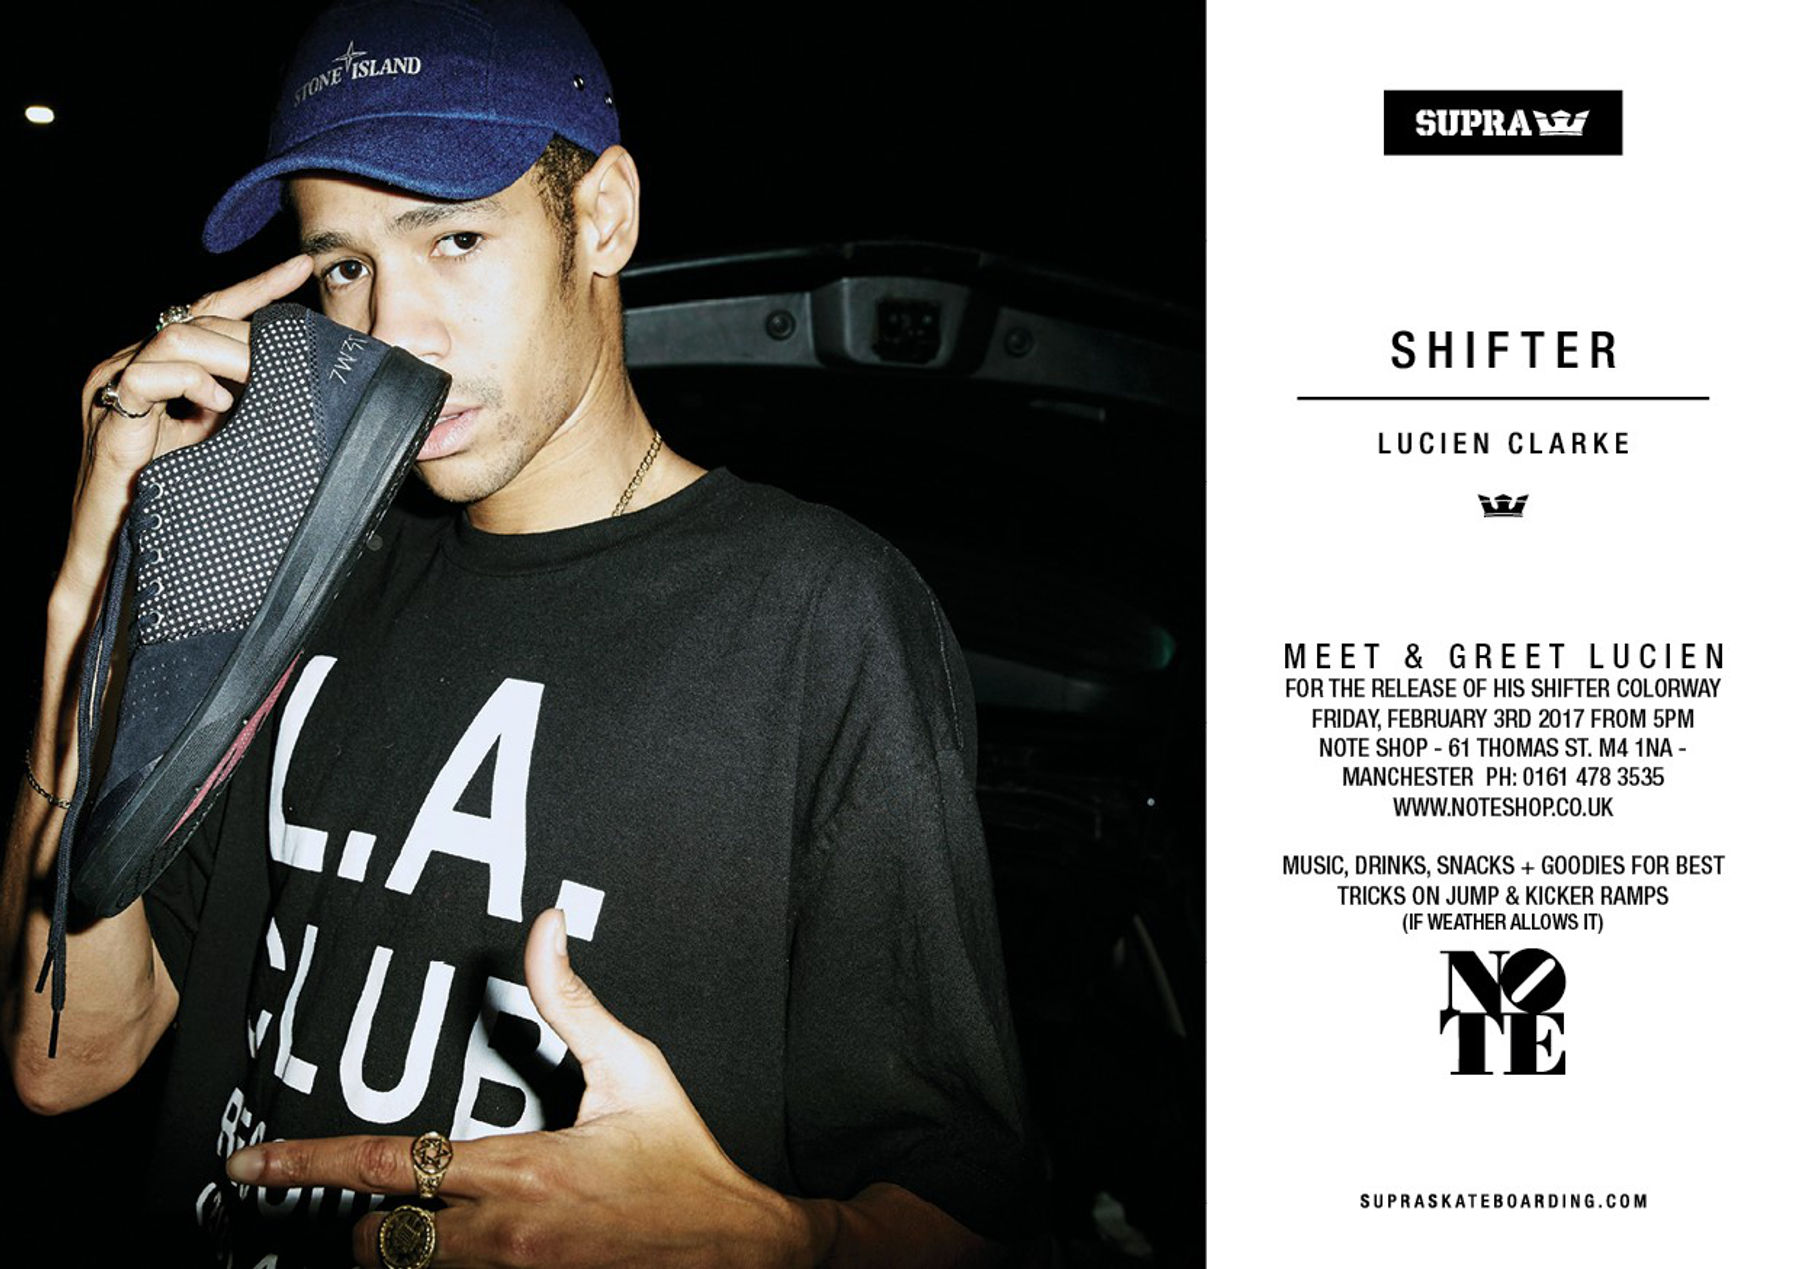 supra-x-note-shop-3rd-feb